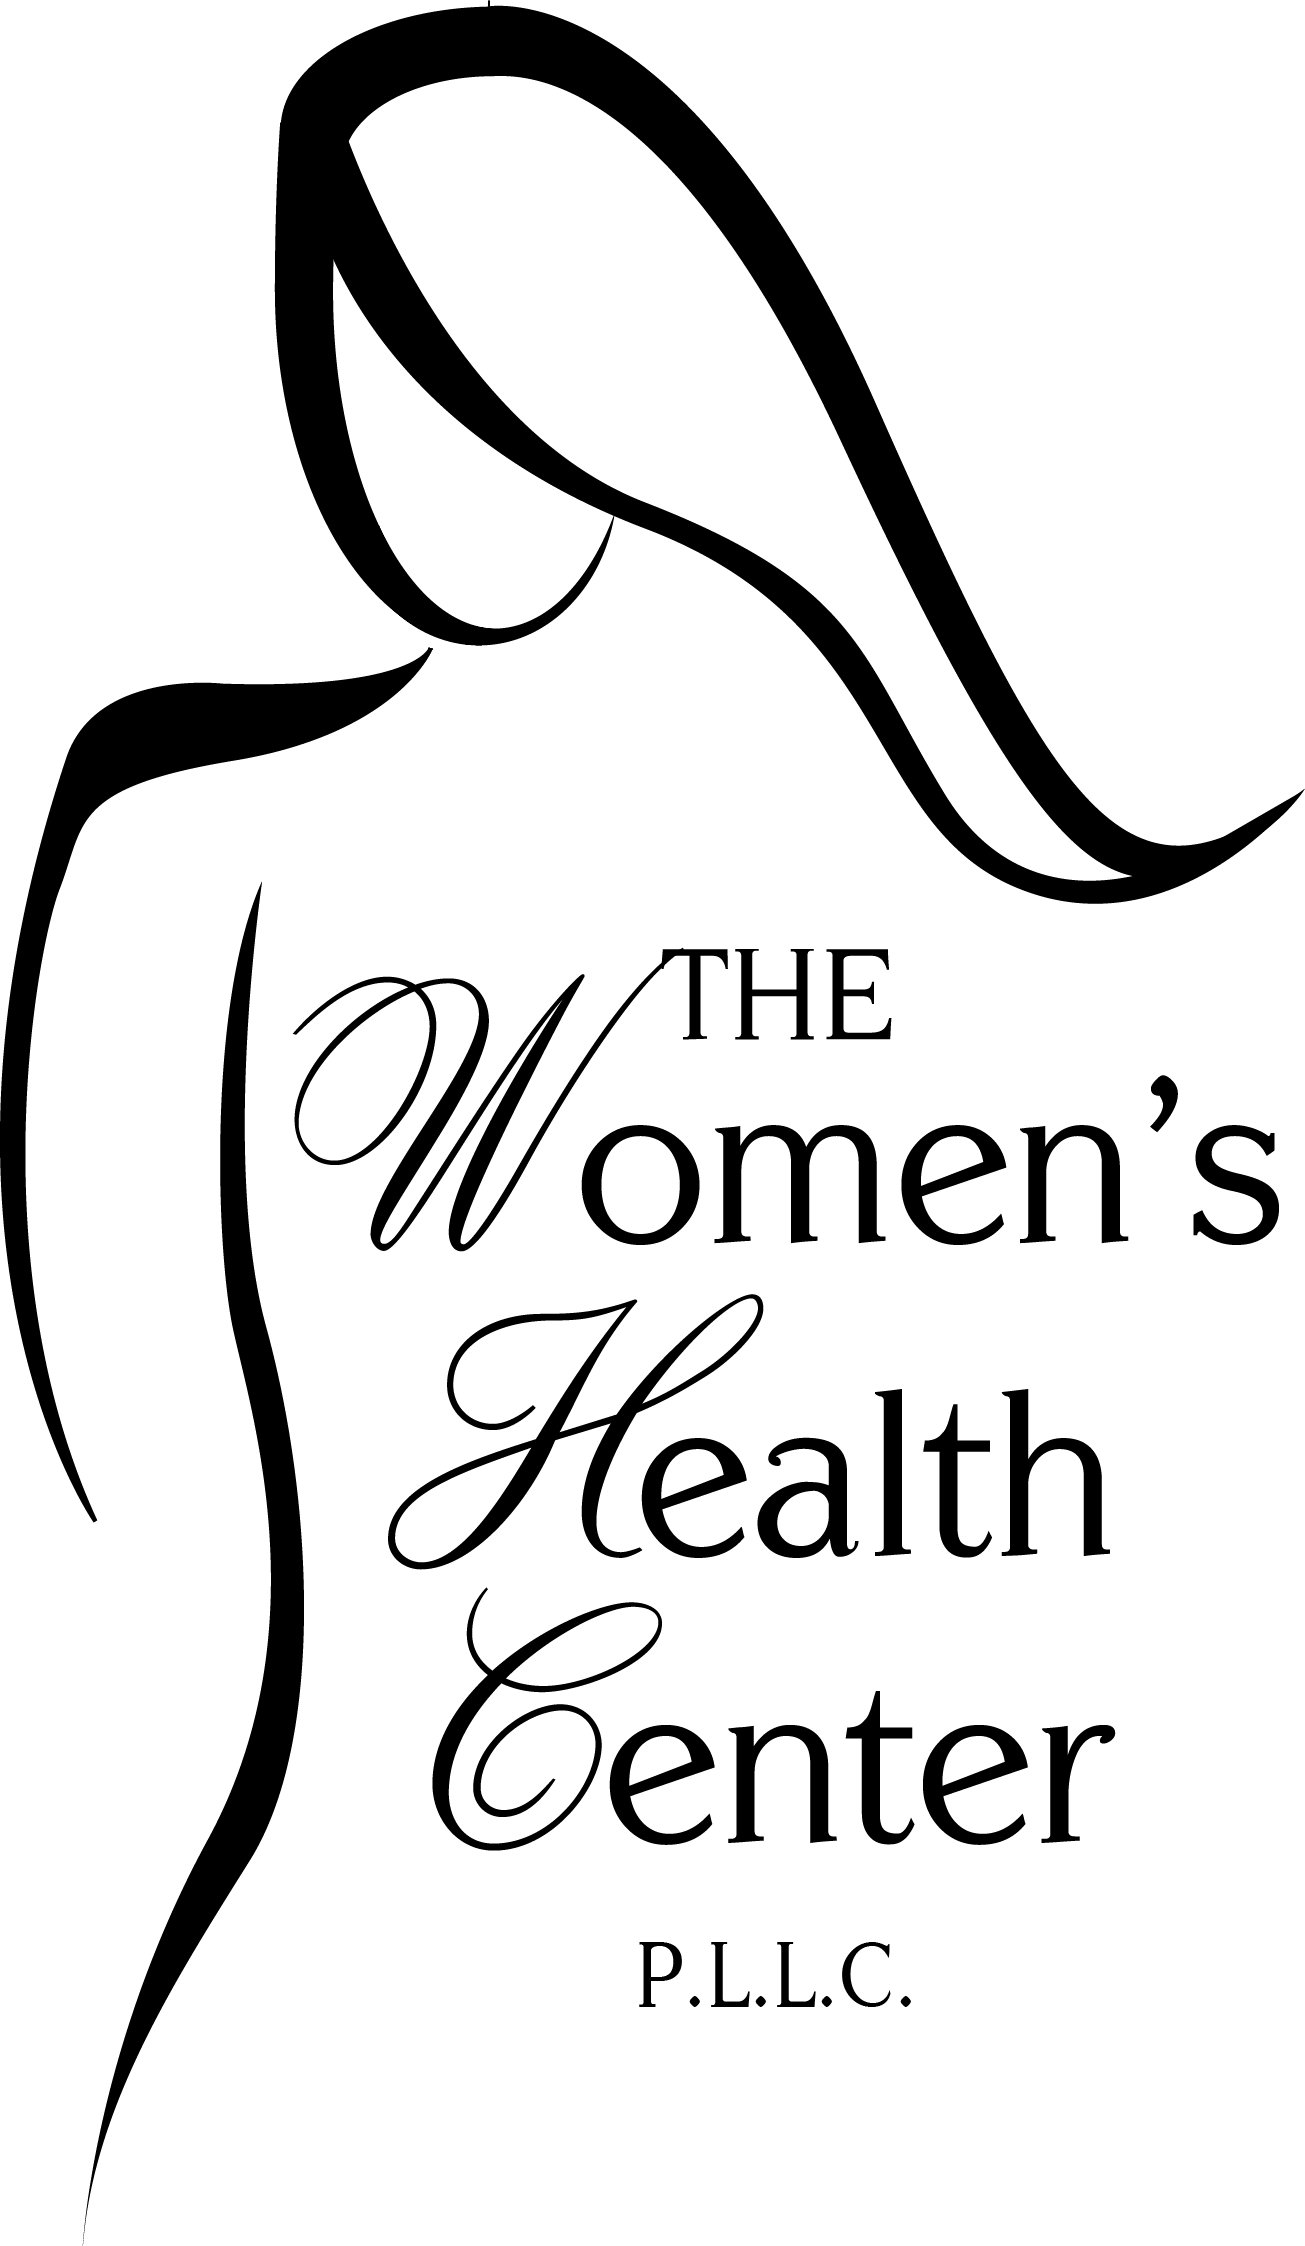 The Women's Health Center